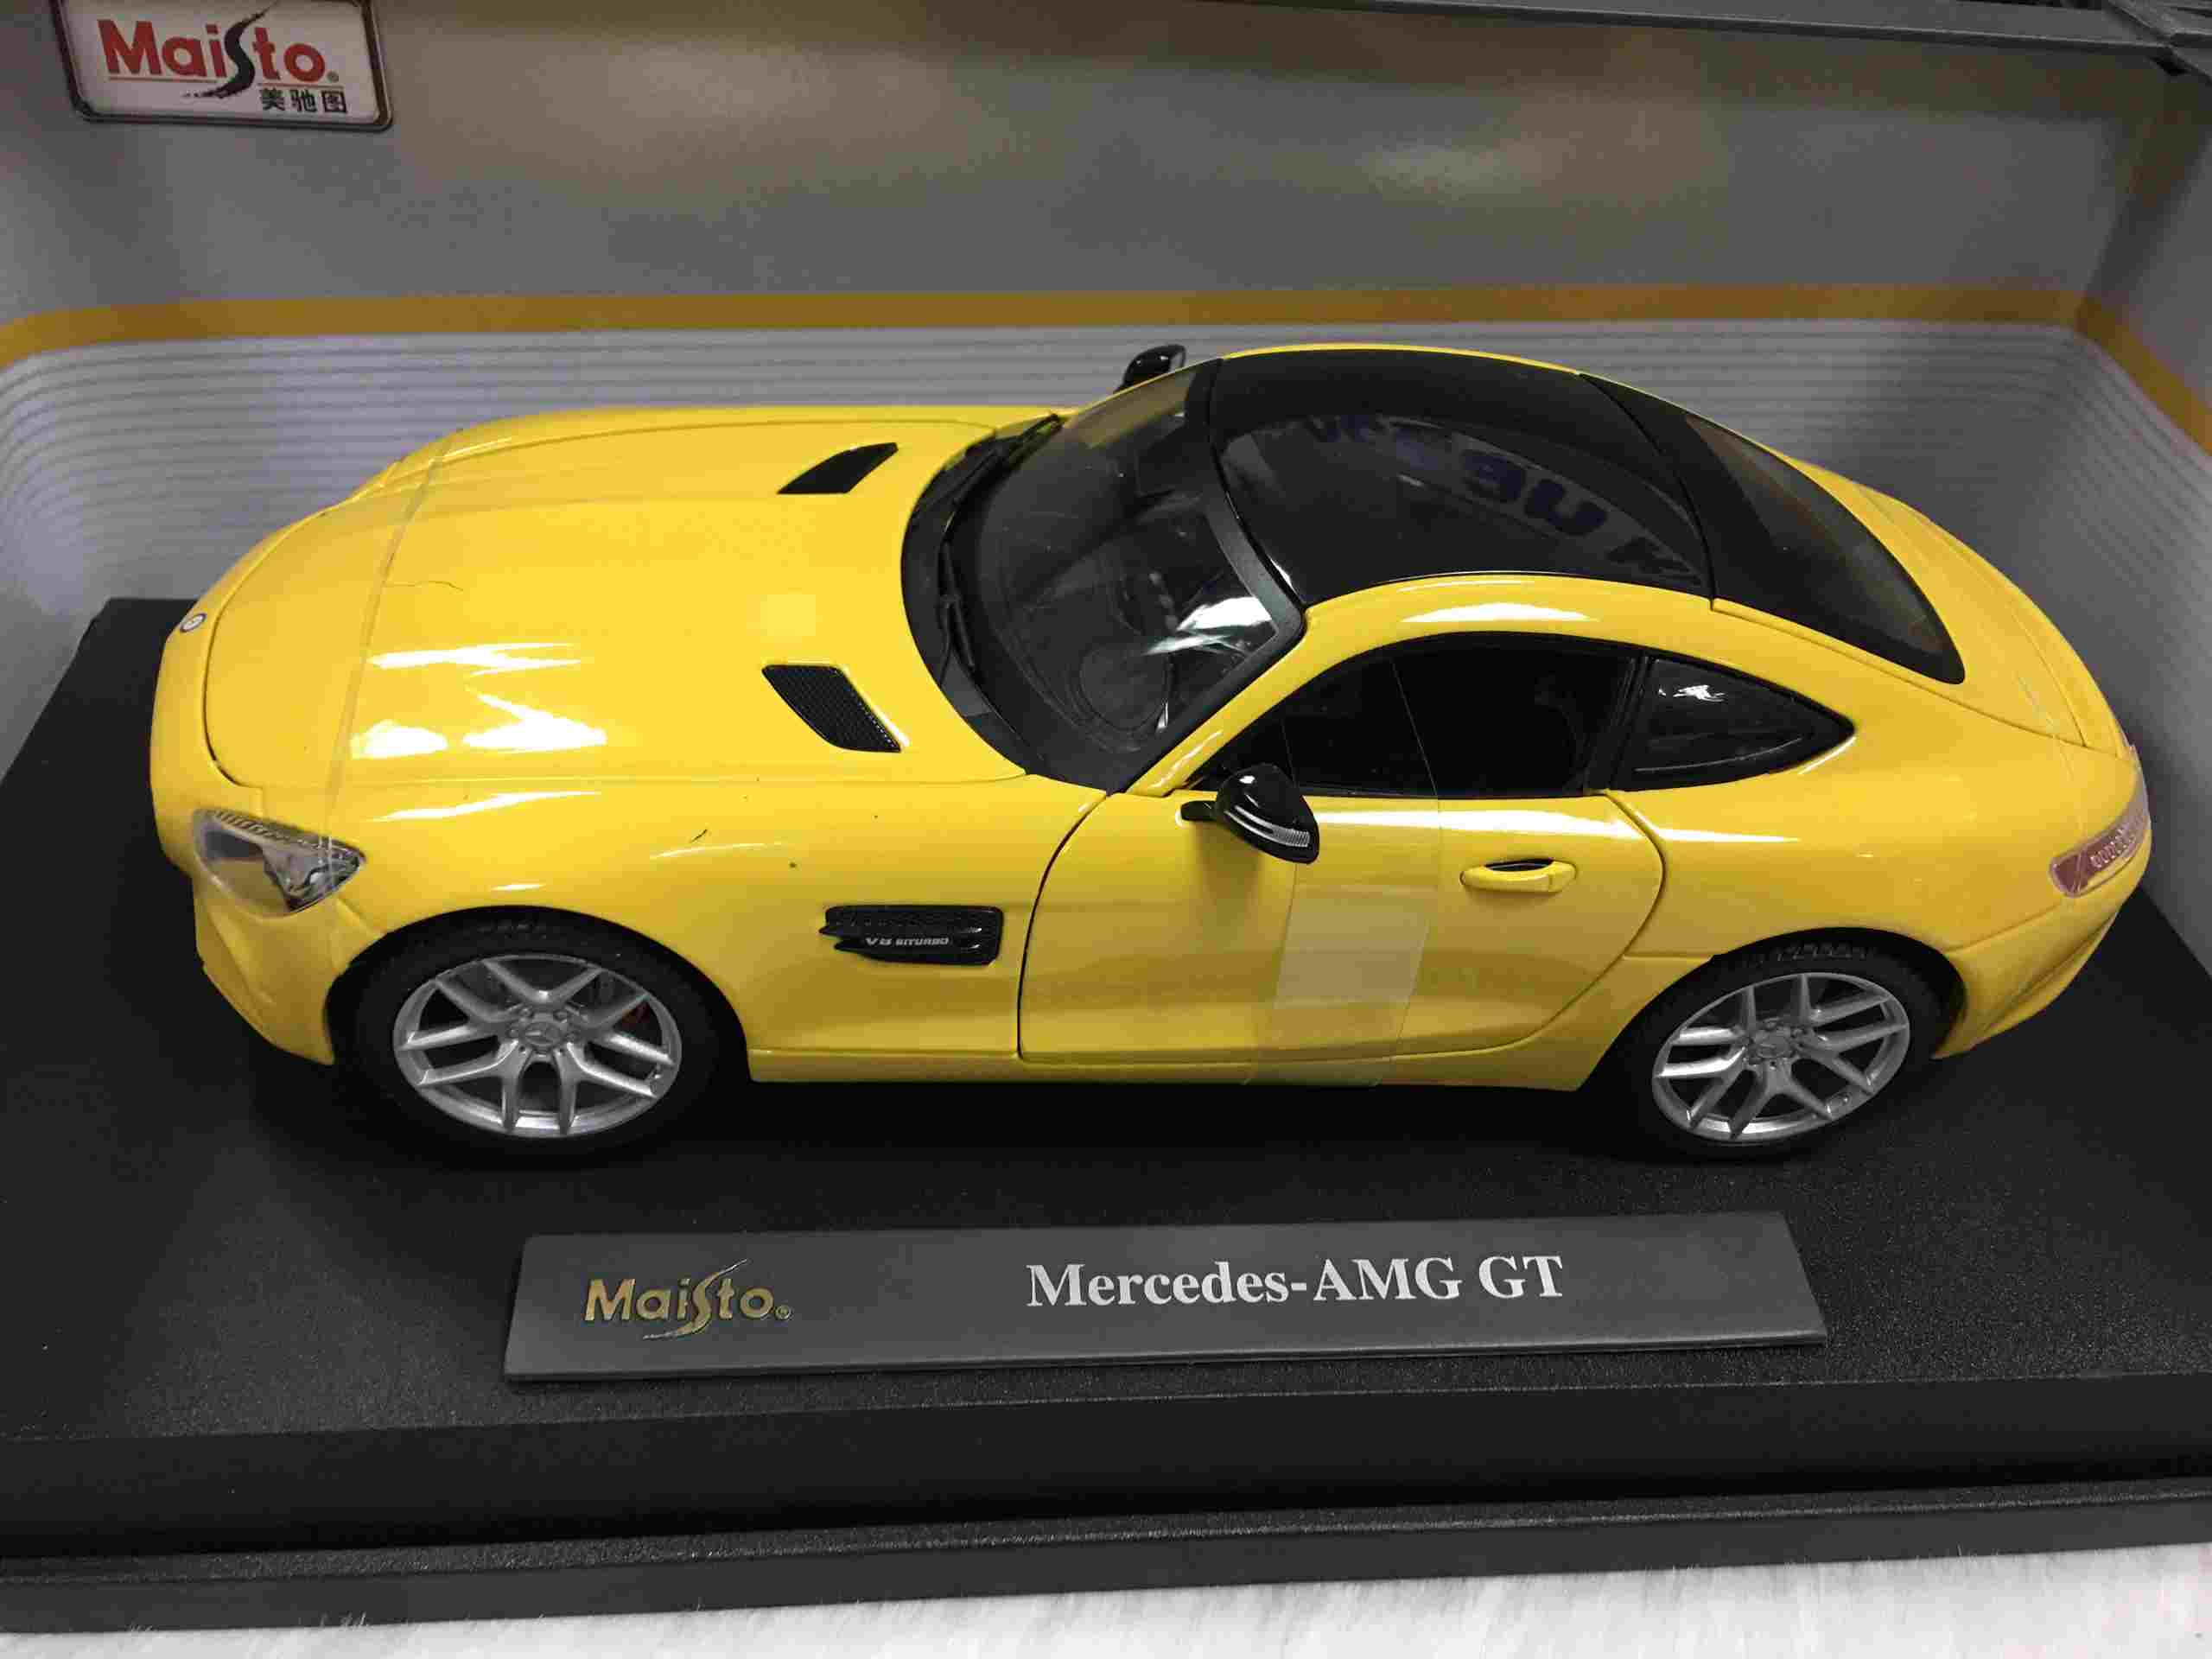 SP005481 - [Maisto] Mercedes AMG GT 118 [Yellow]